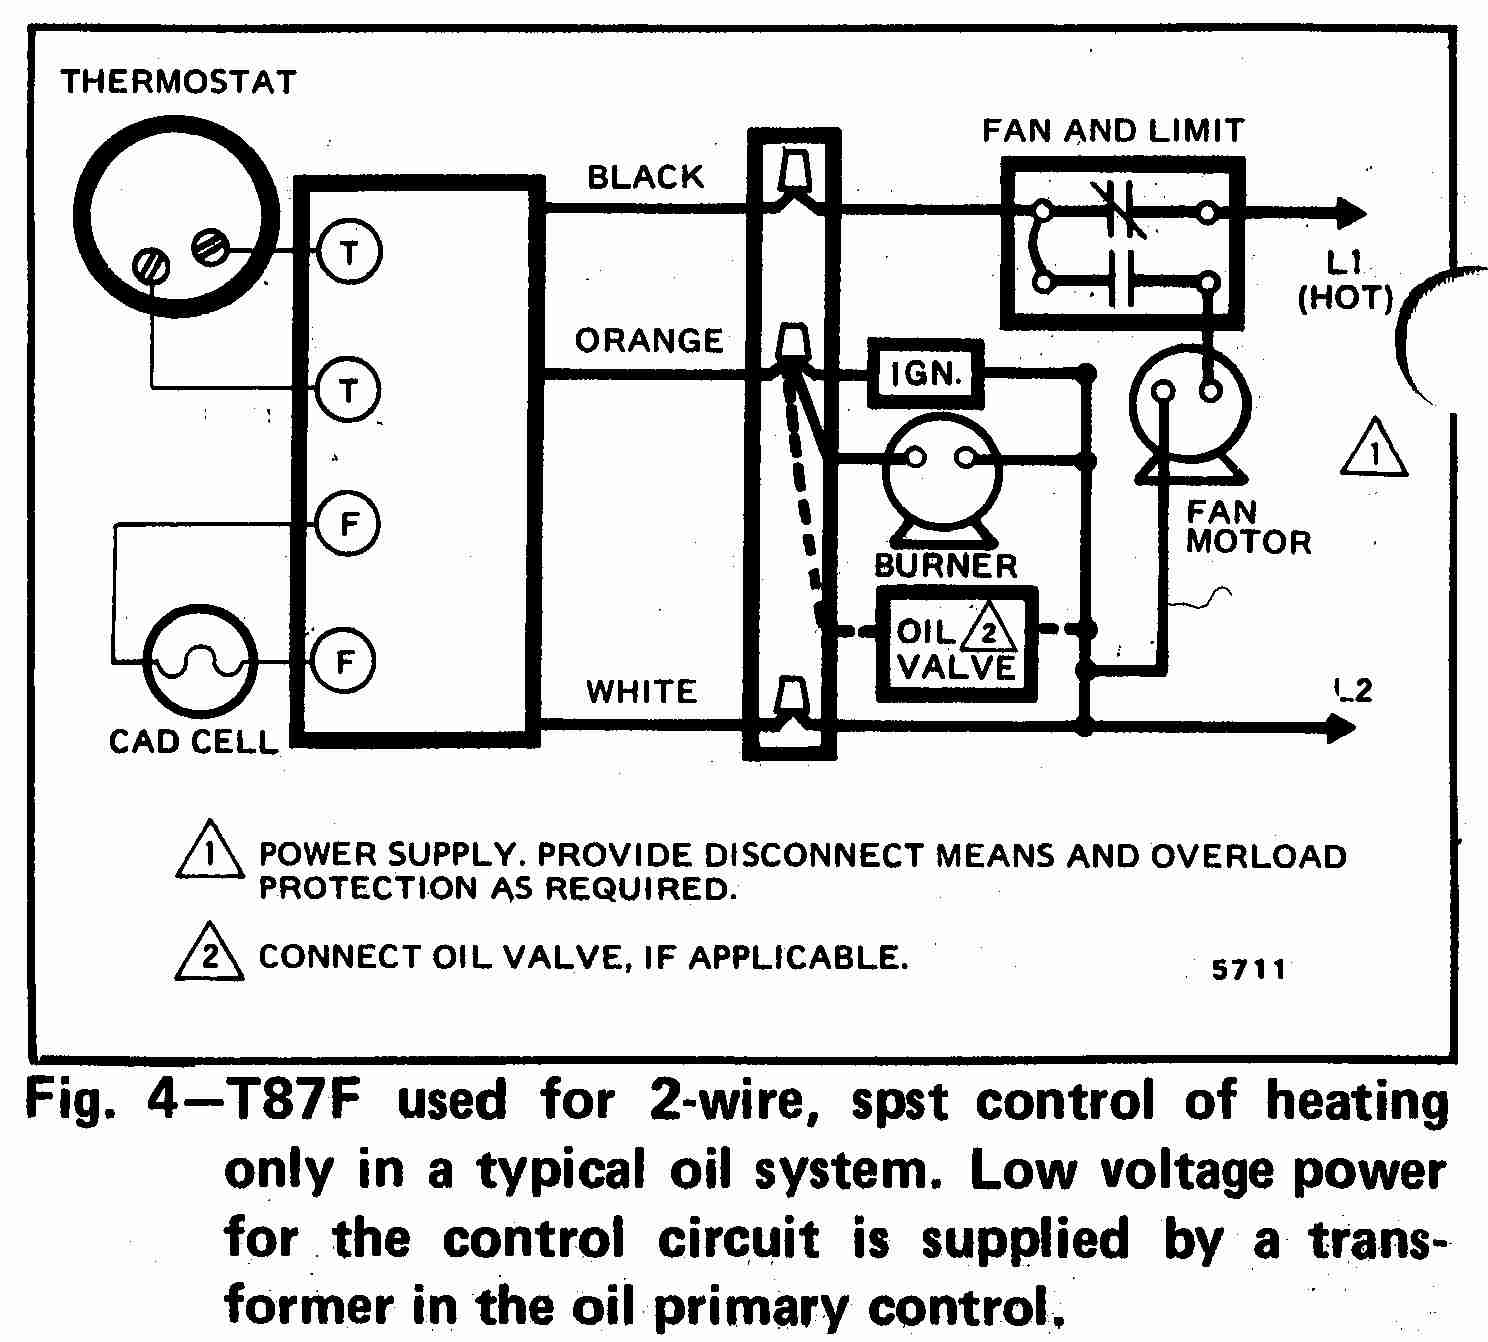 TT_T87F_0002_2W_DJF hvac control wiring diagram hvac compressor wiring diagram \u2022 free honeywell pressure switch wiring diagram at creativeand.co